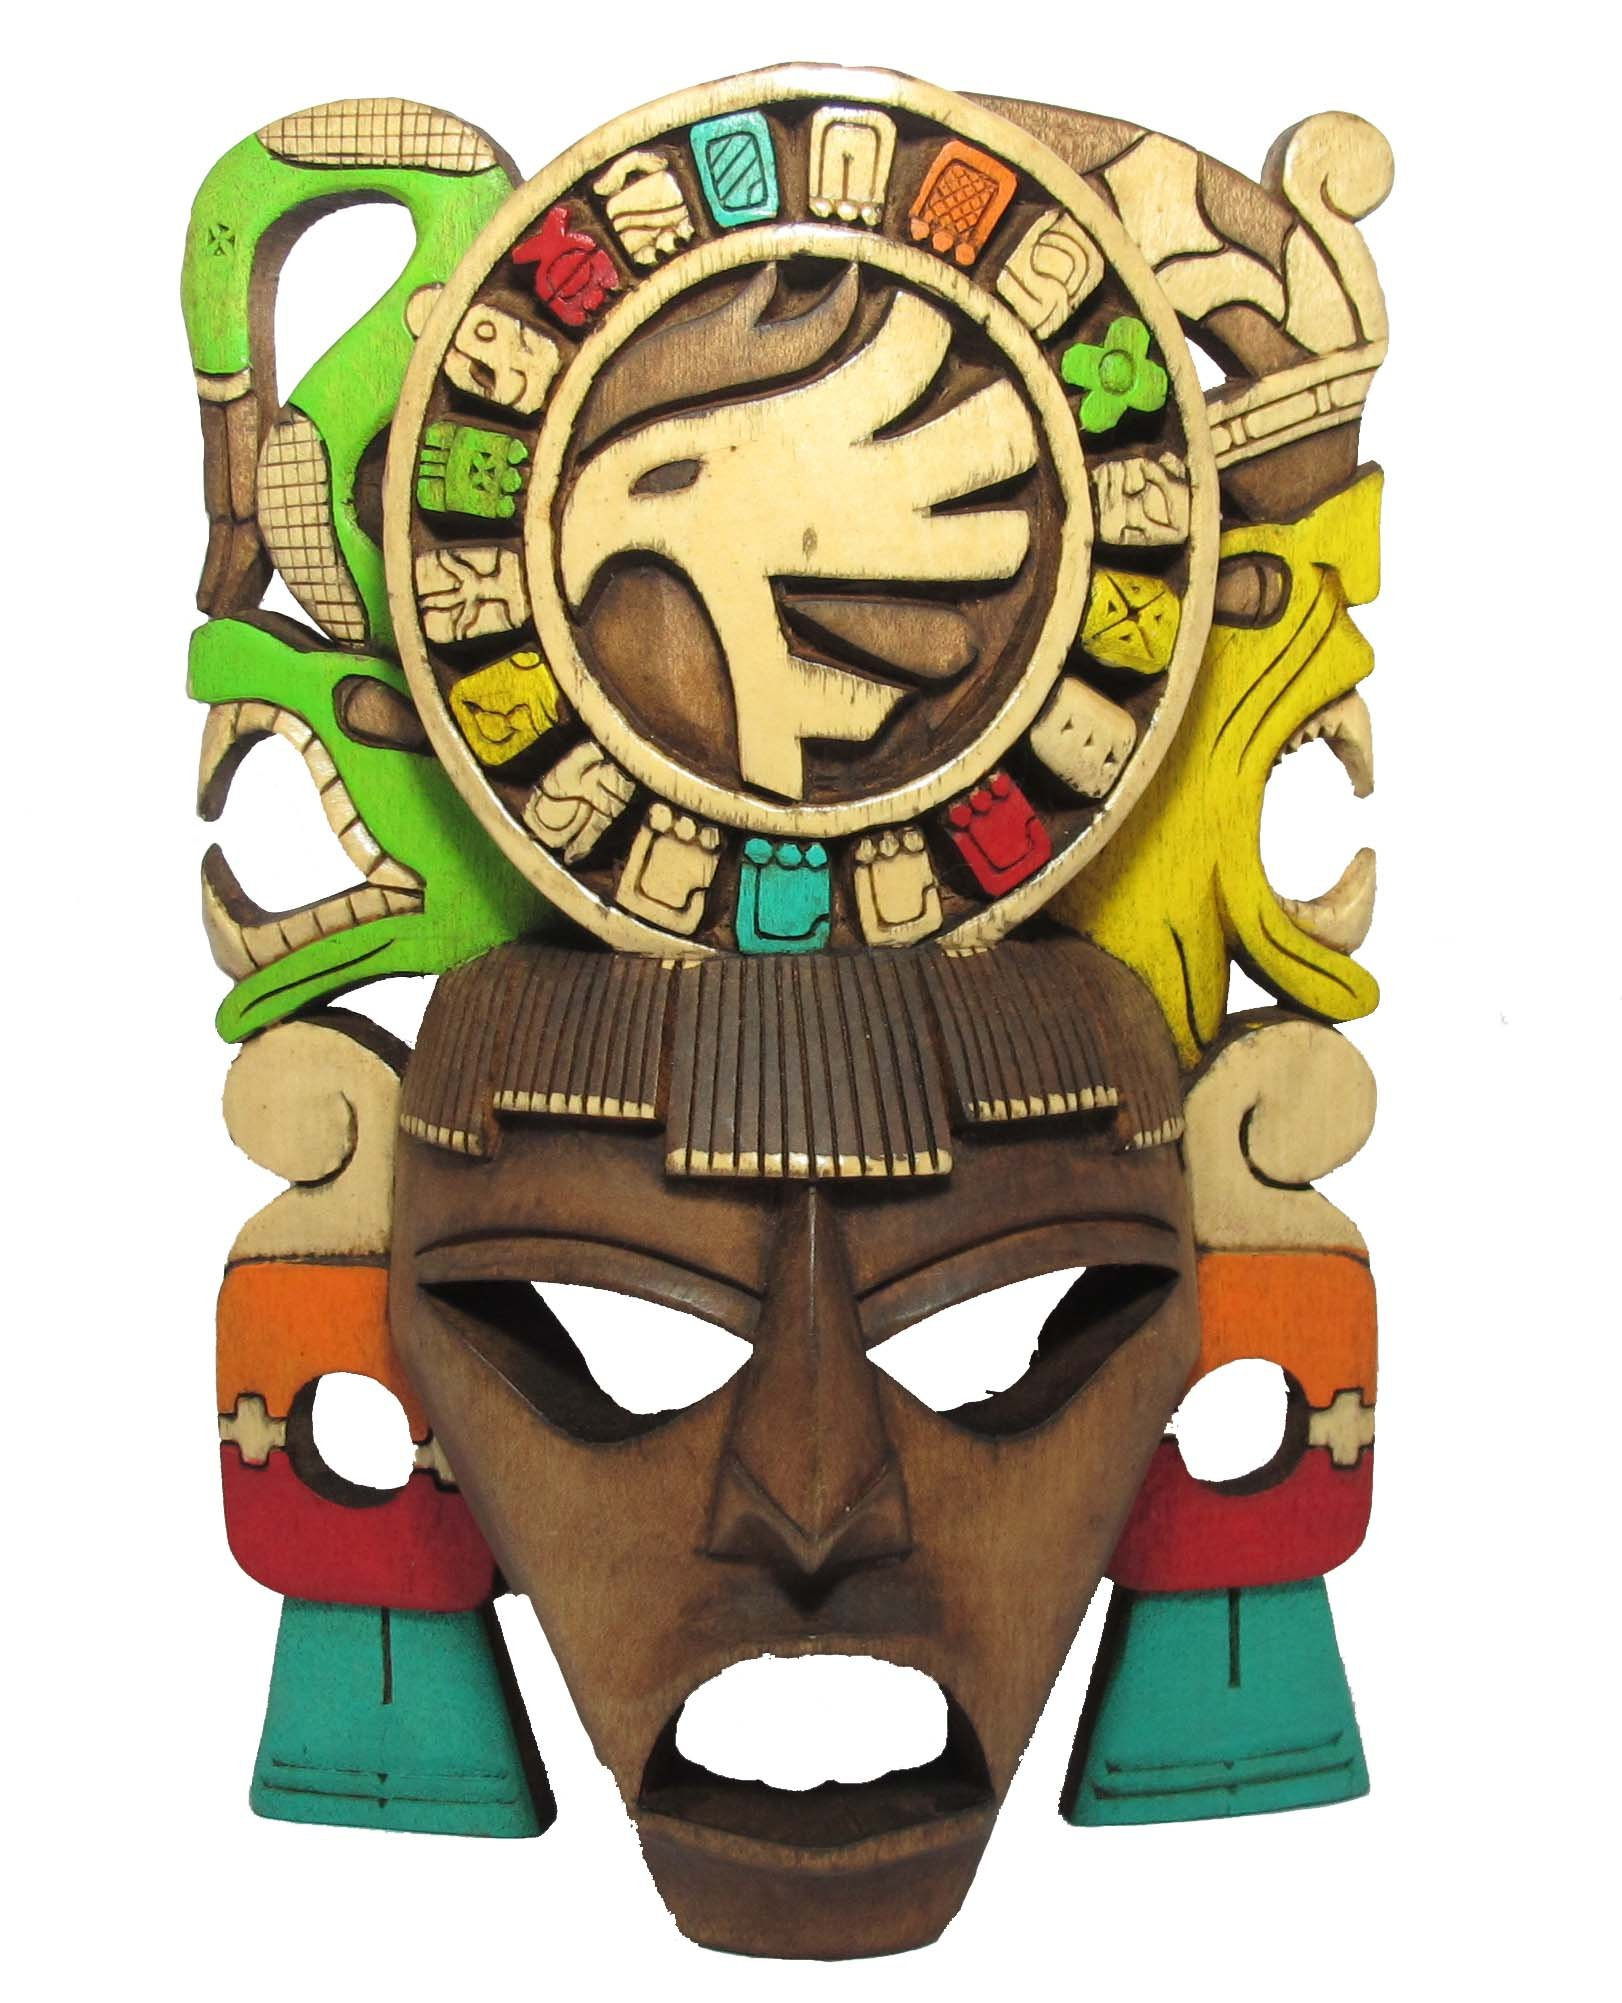 Sofia's Findings Mayan Mask - Mayan Calendar Mask by Sofia's Findings